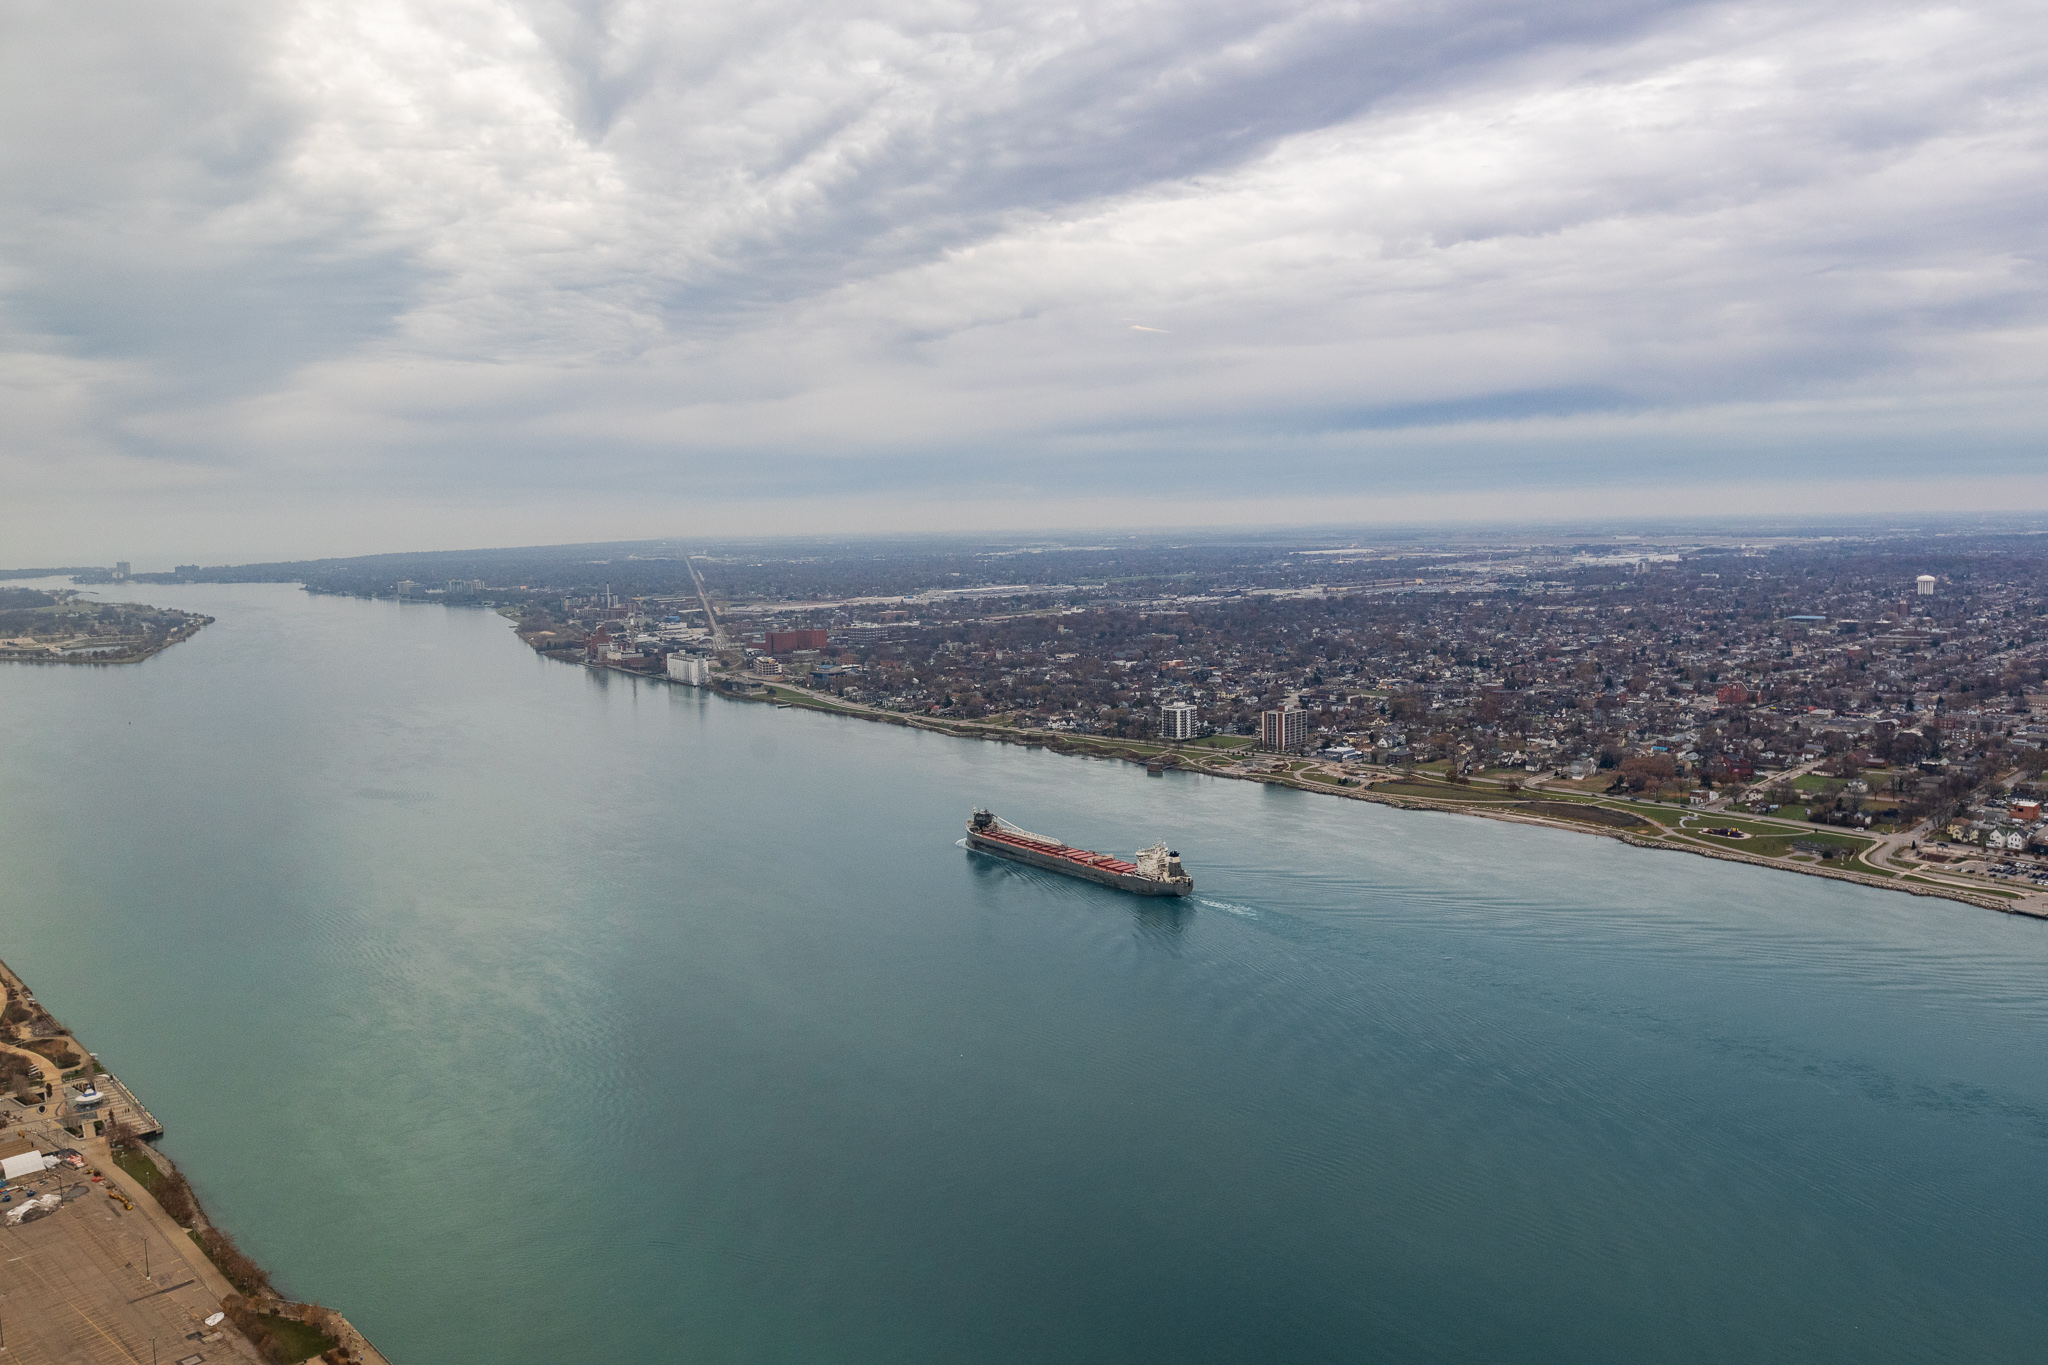 Radiation scare on Detroit River a 'wake-up call'